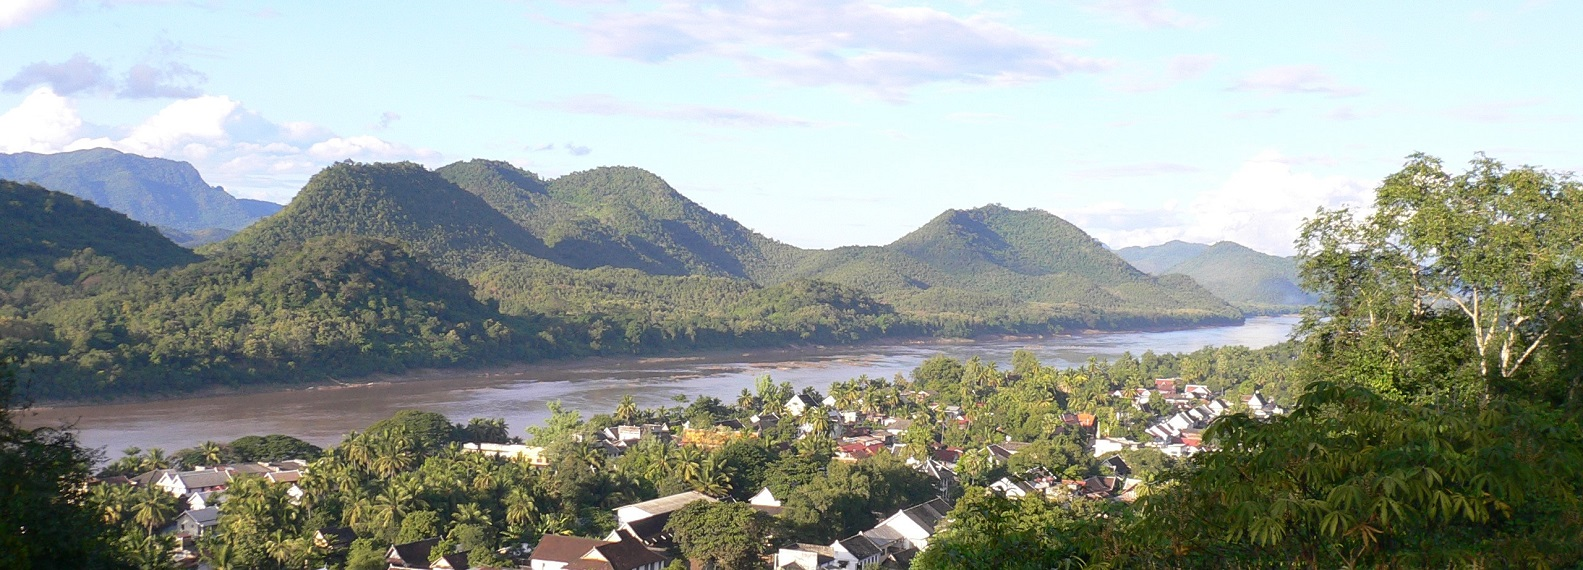 The Mekong still runs full and strong through Luang Prabang, but for how long? Photo by the author.